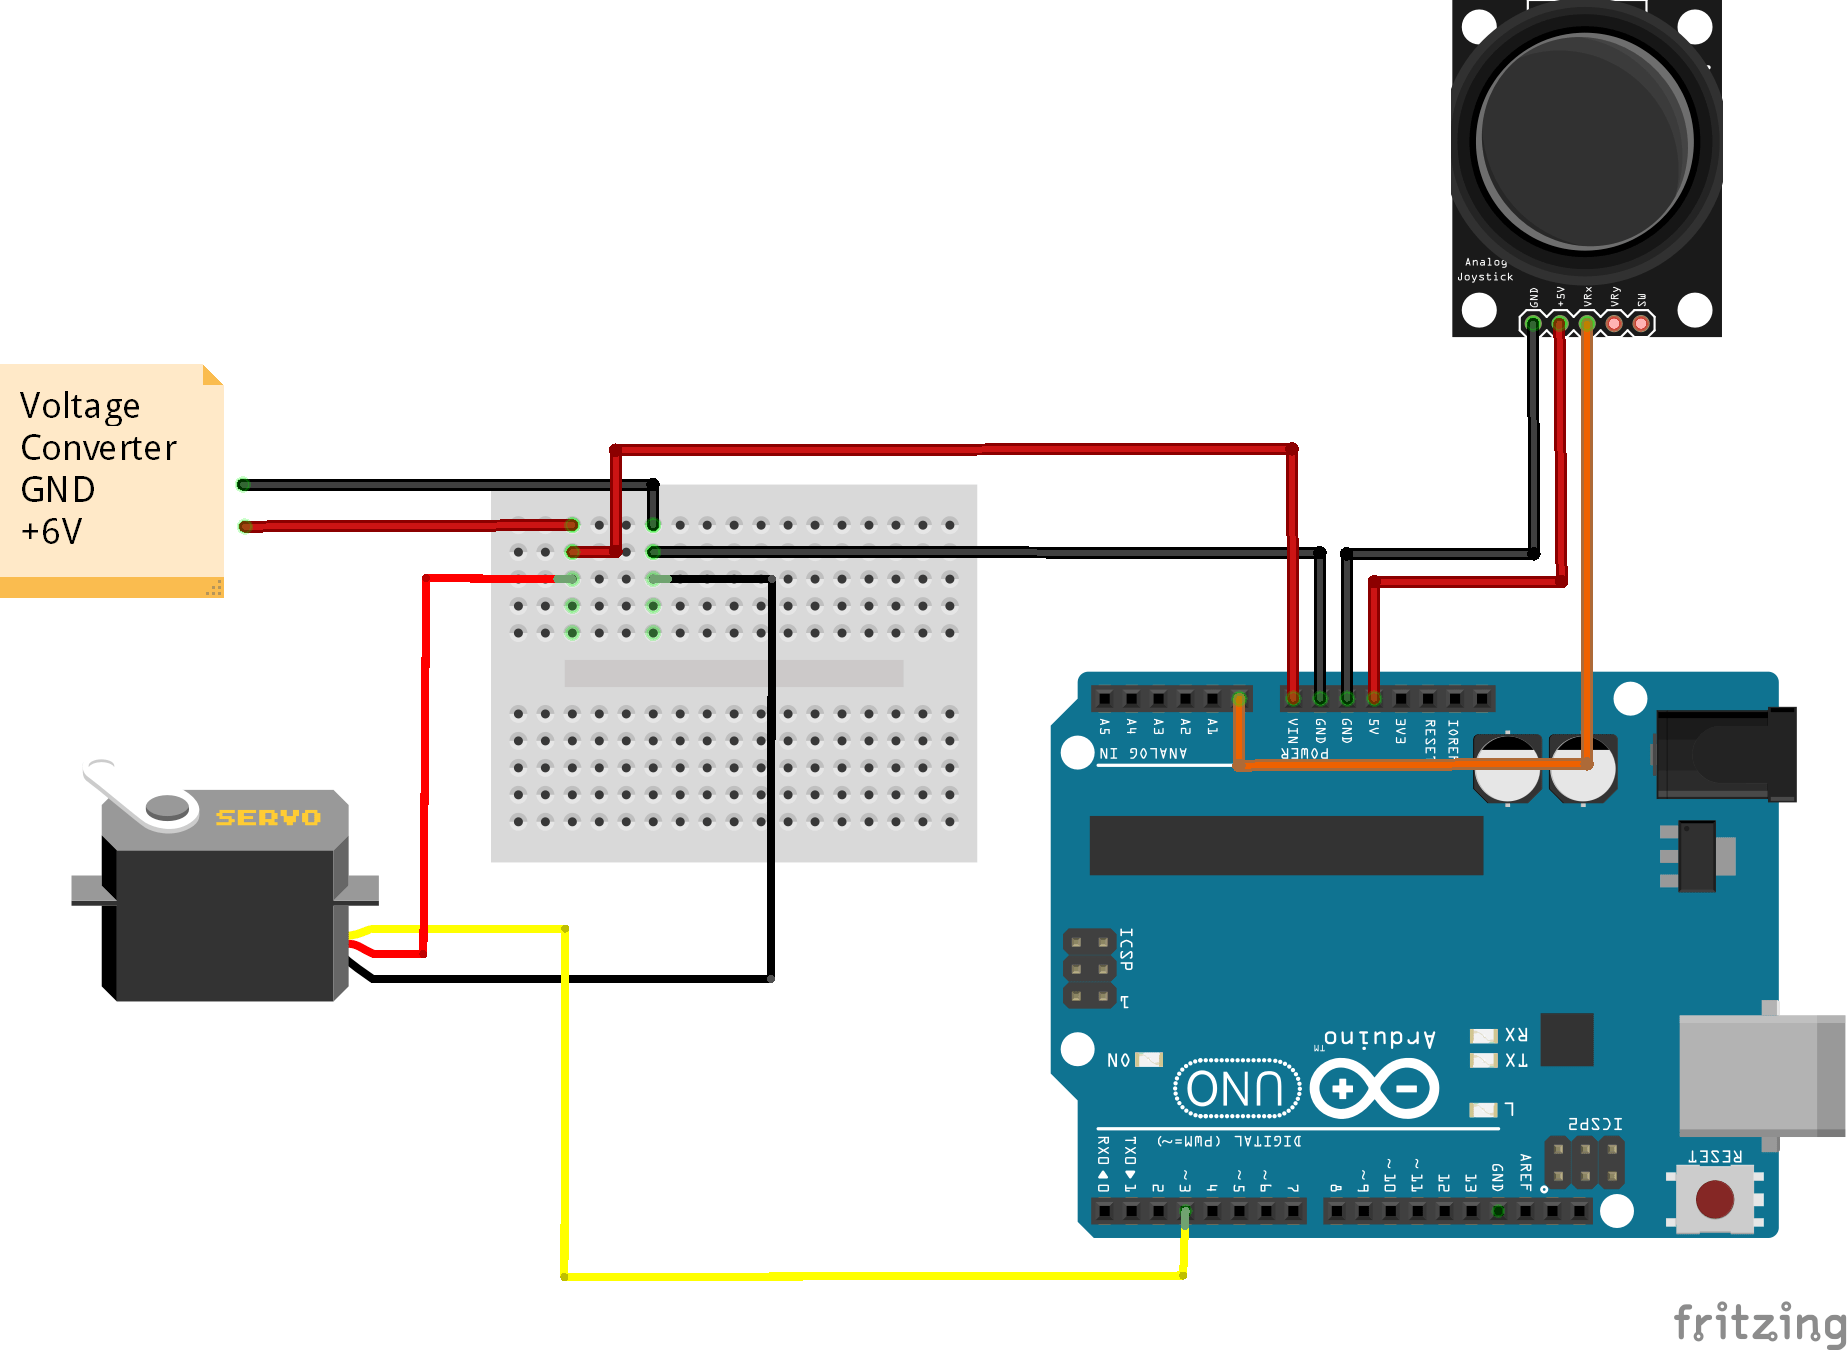 Controlling Servo Angle using Joystick in Arduino IDE - STEMpedia on joystick circuit, joystick cable, joystick parts, joystick switch, joystick connector, joysticks connections diagram, joystick schematic diagram, joystick 6 pin wiring, plow joystick diagram, western plow pump diagram, western joystick wire diagram, western plow hydraulic diagram,